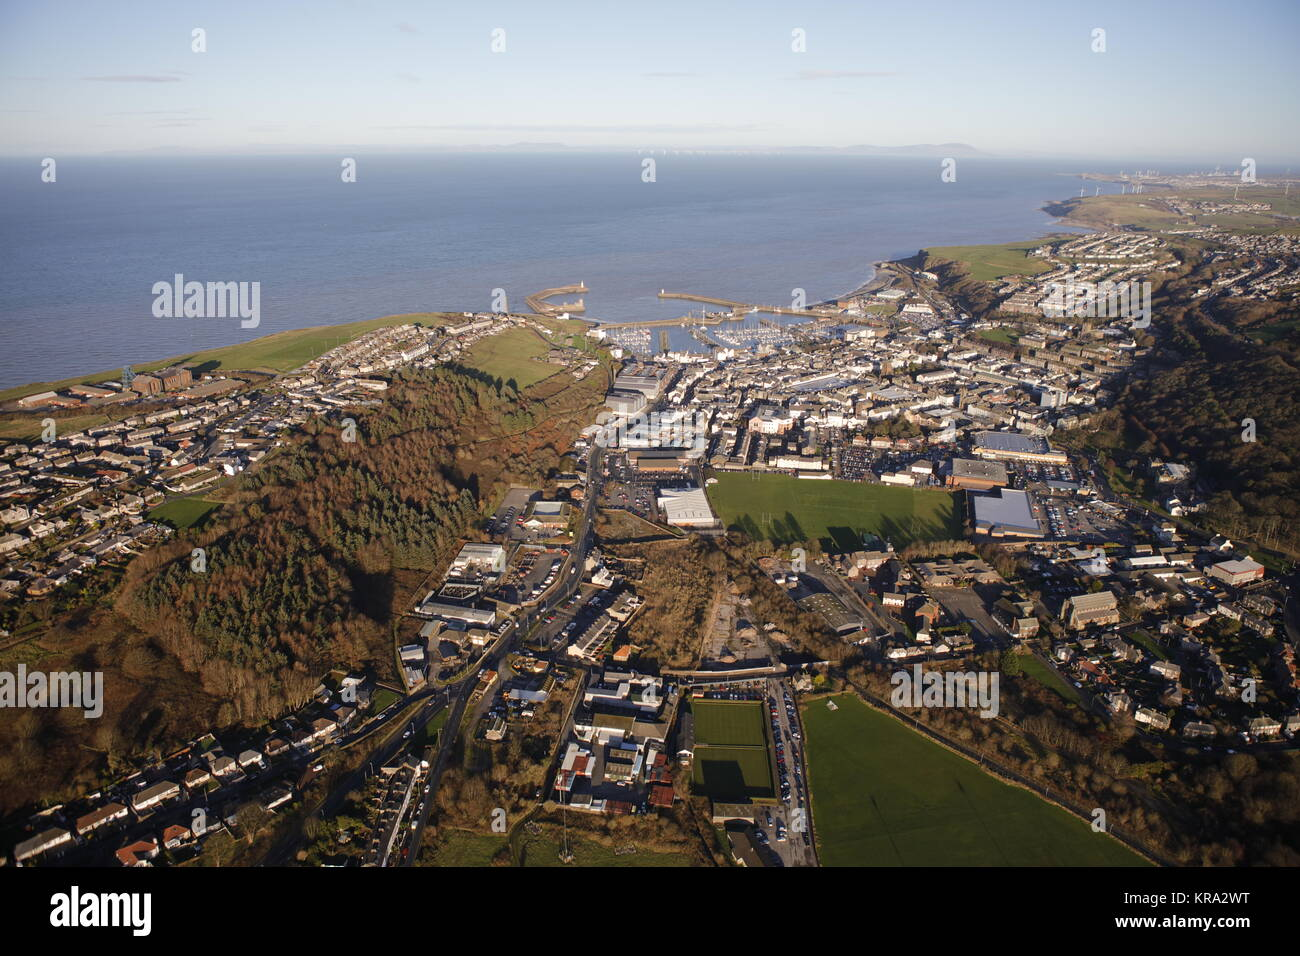 An aerial view of the town of Whitehaven on the coast of Cumbria - Stock Image